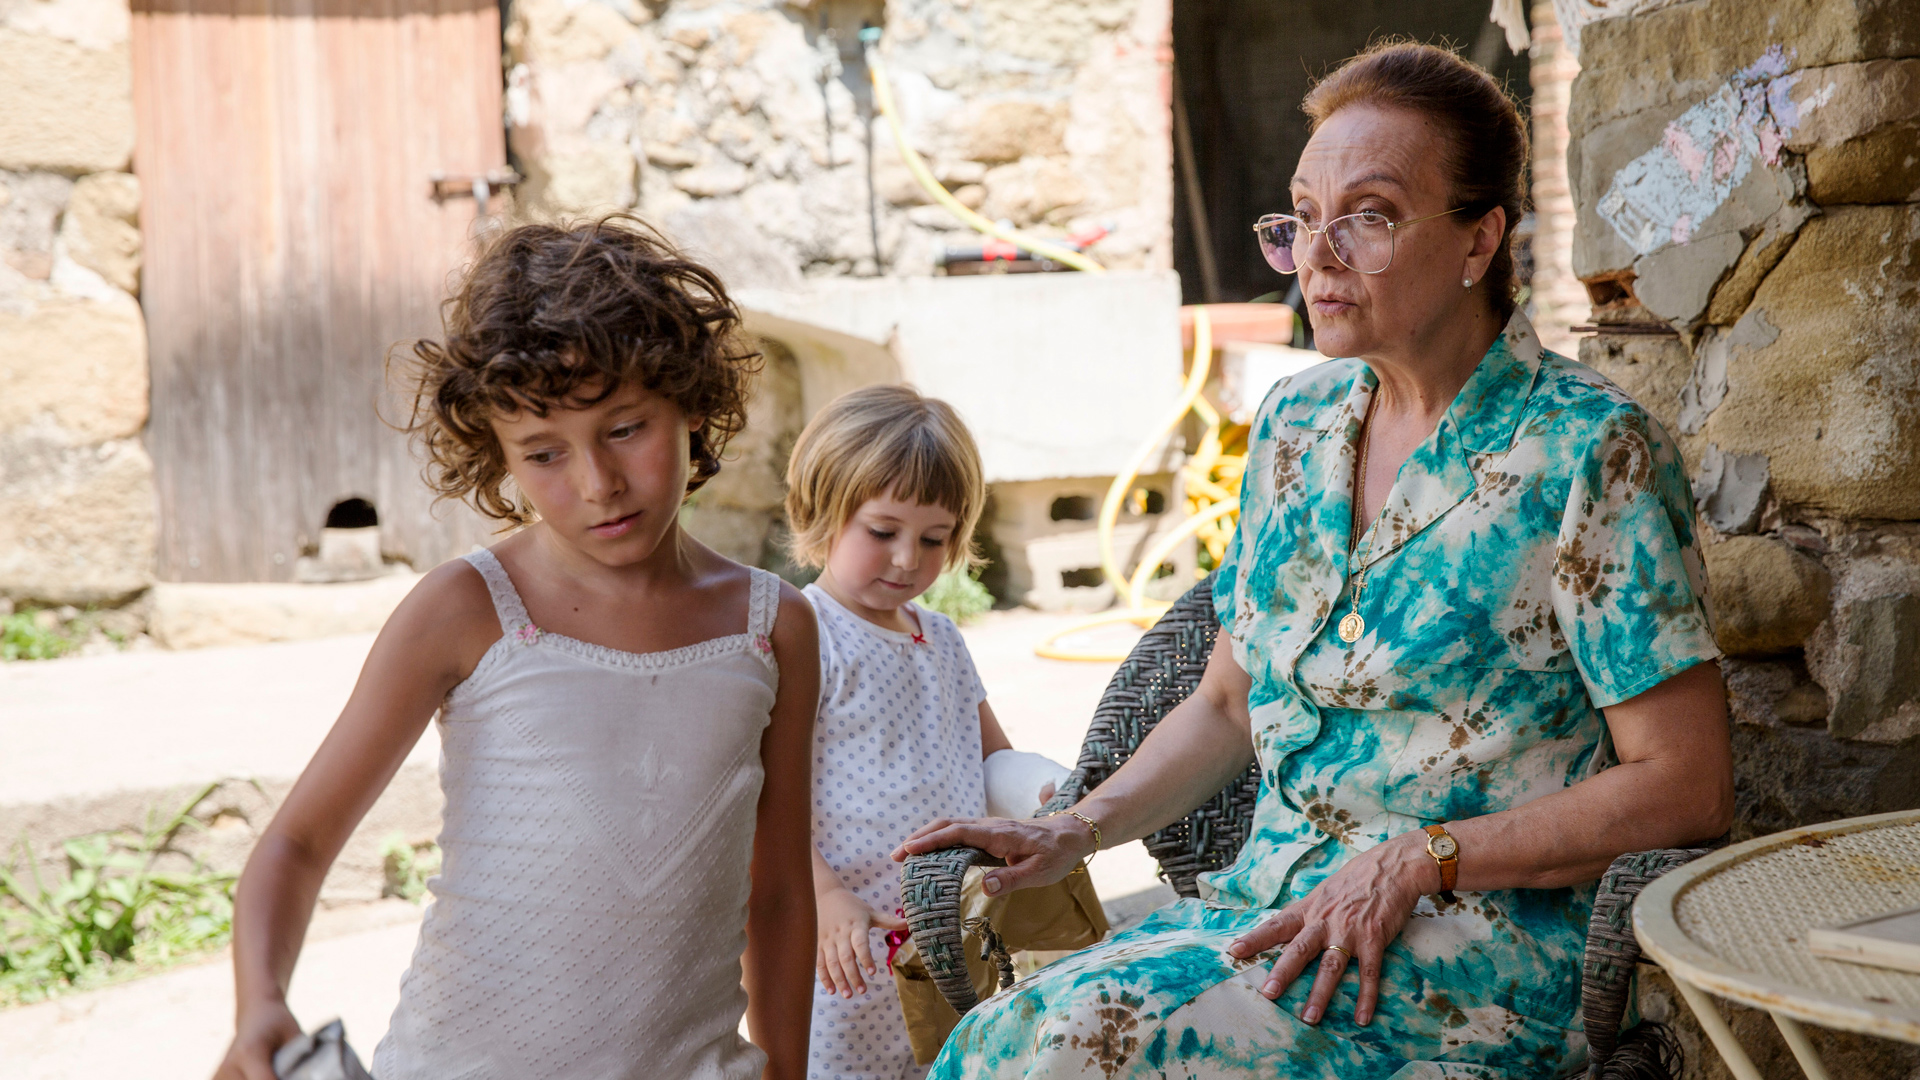 In  Summer 1993 , Frida must quickly integrate into a new family in an unfamiliar rural setting.